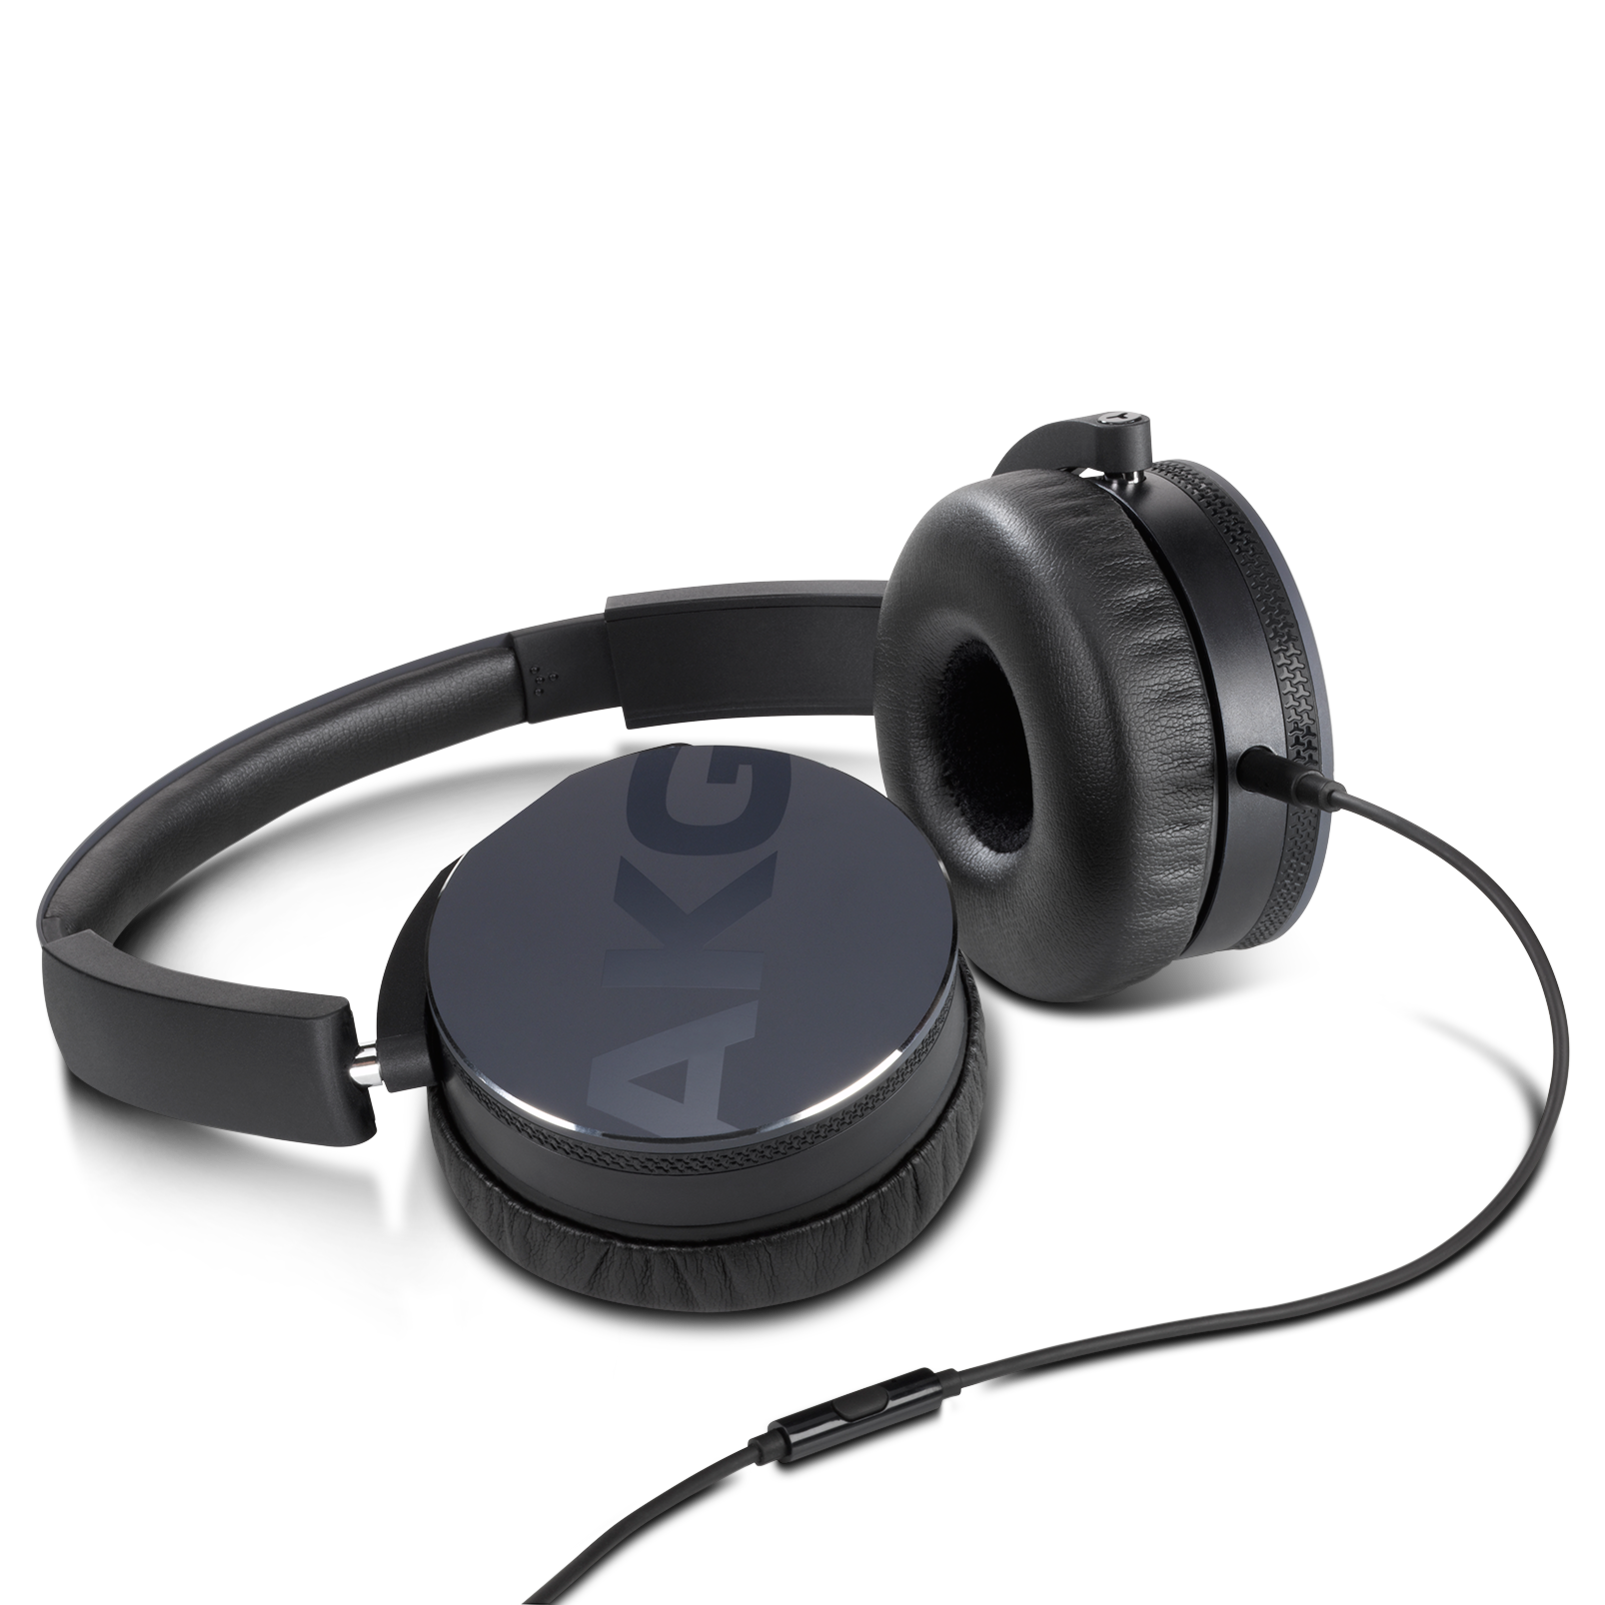 Y50 - Black - On-ear headphones with AKG-quality sound, smart styling, snug fit and detachable cable with in-line remote/mic - Detailshot 3